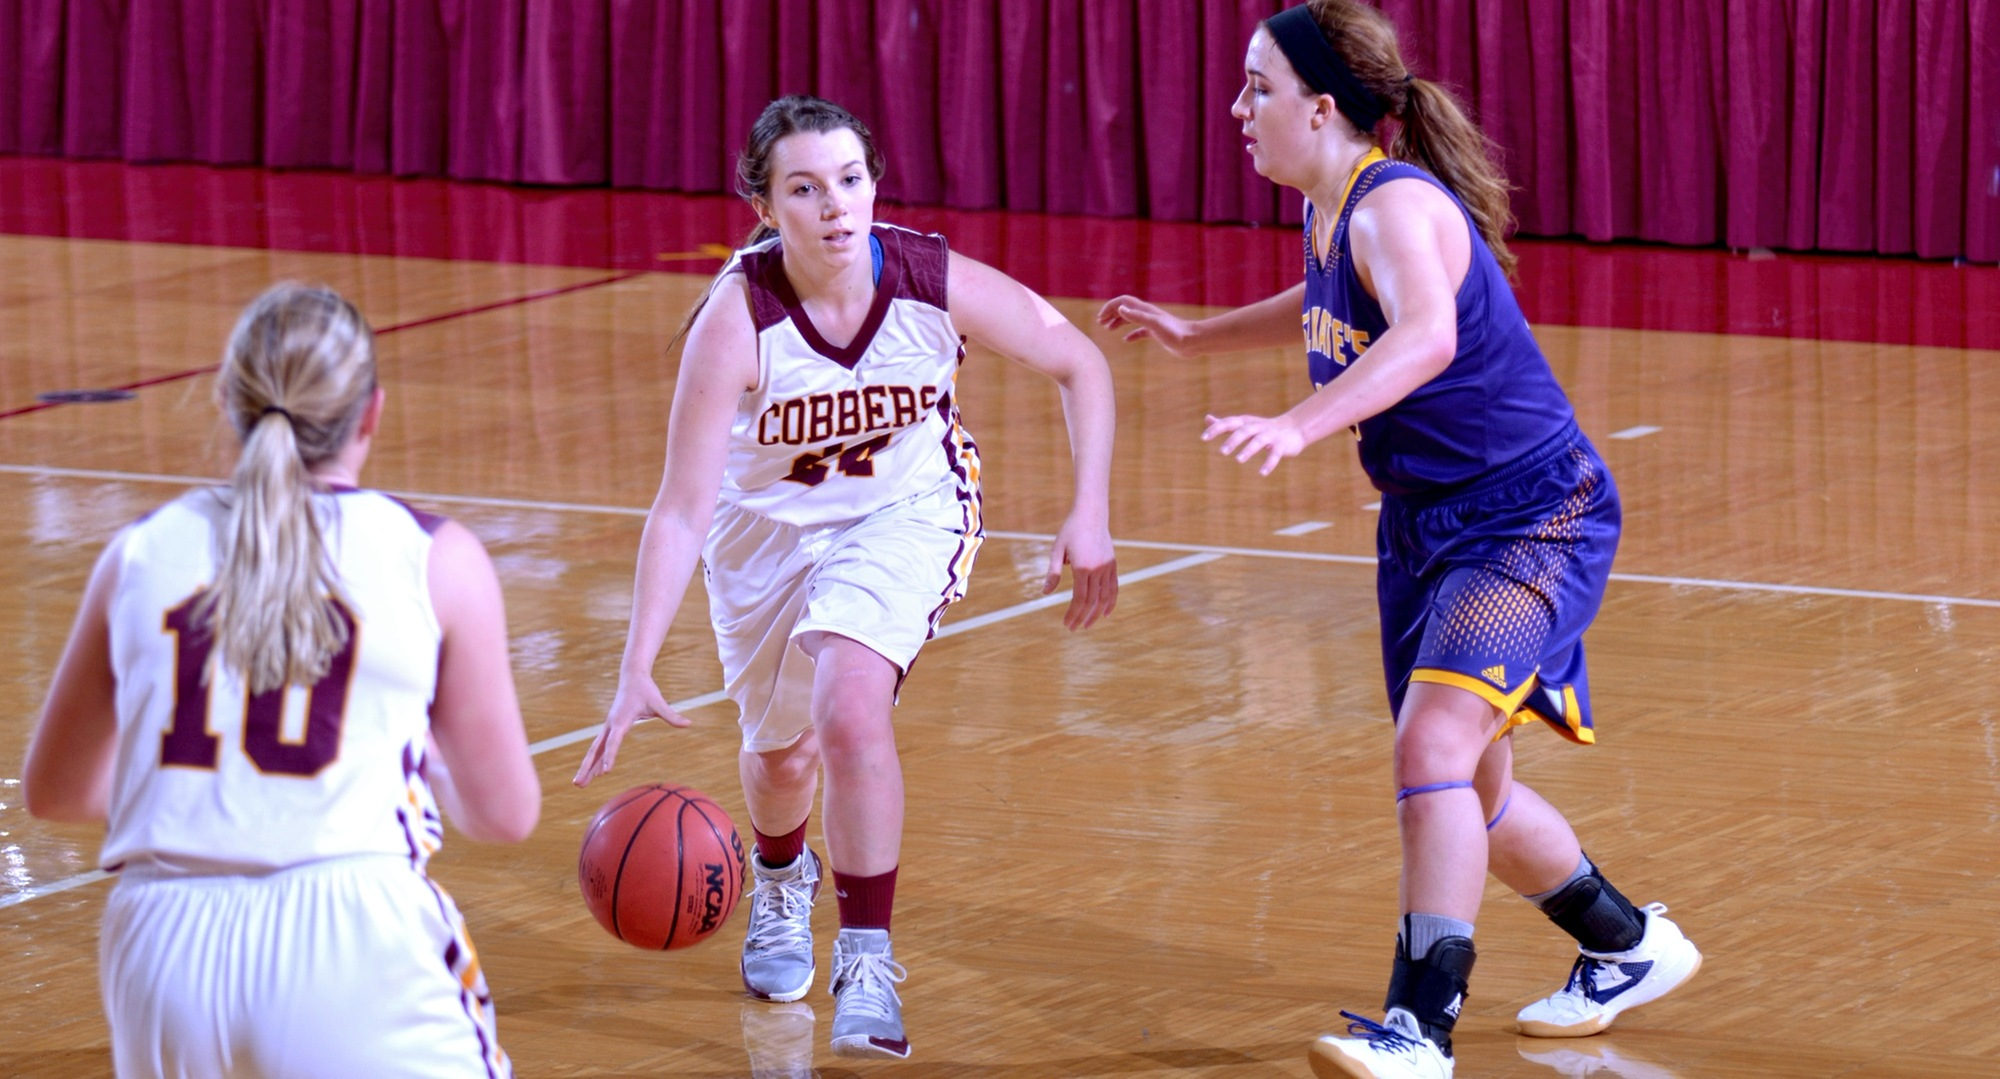 Junior Cassidy Rahman had a career-high 10 rebounds in the Cobbers' game at St. Catherine.